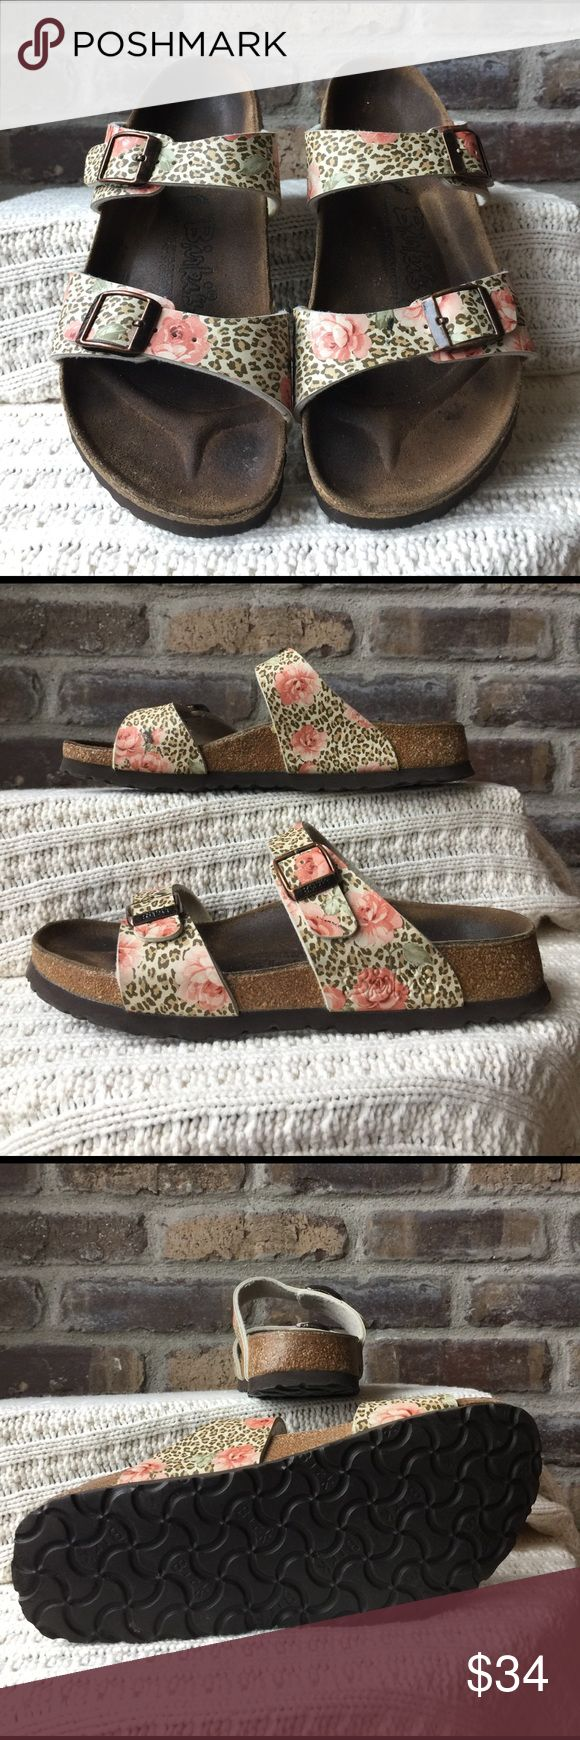 Birkis by Birkenstocks Women's size 5/35 Birkis by Birkenstocks. The foot is filled in so they are normal width. They have been worn but still have a lot of life left Birkenstock Shoes Sandals